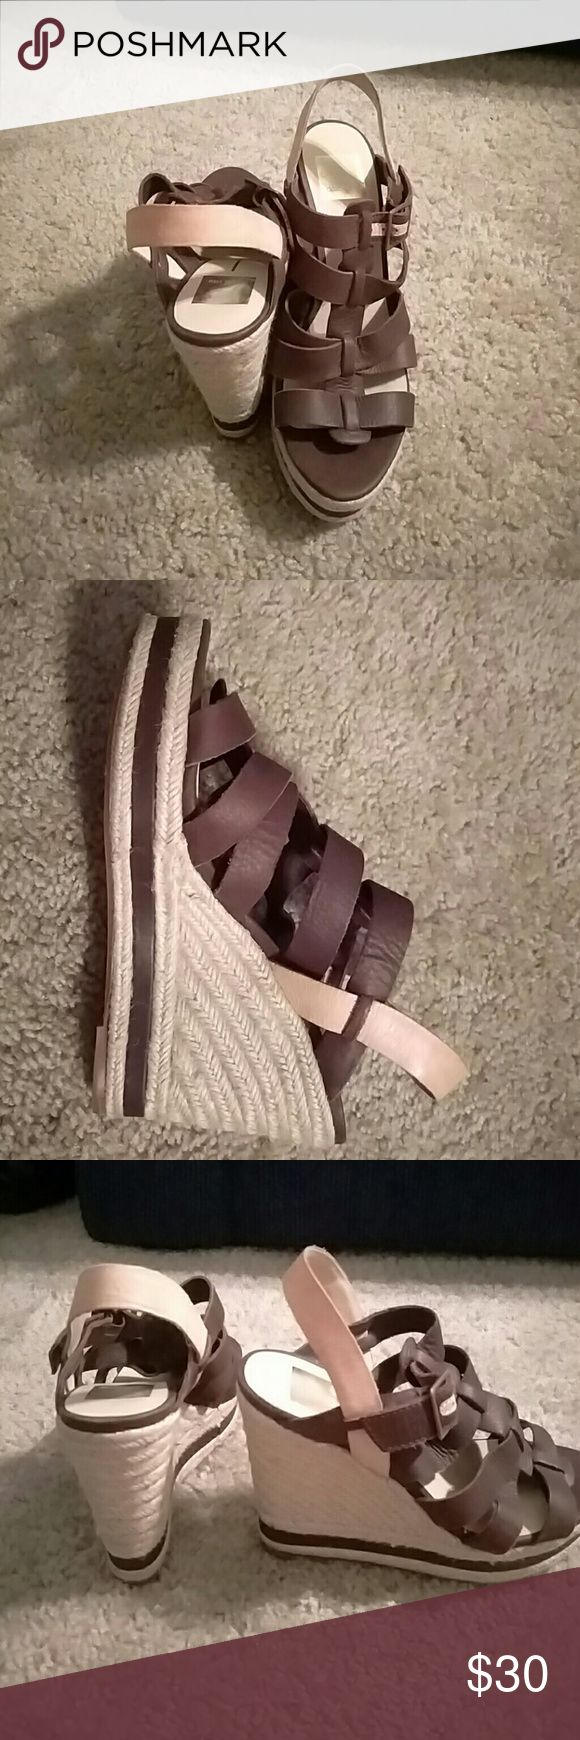 Dolce Vita Wedges, 4 inch wedge! Multicolored Cute chocolate and nude espadrille wedges, perfect with many outfits, for work or play! Dolce Vita Shoes Wedges